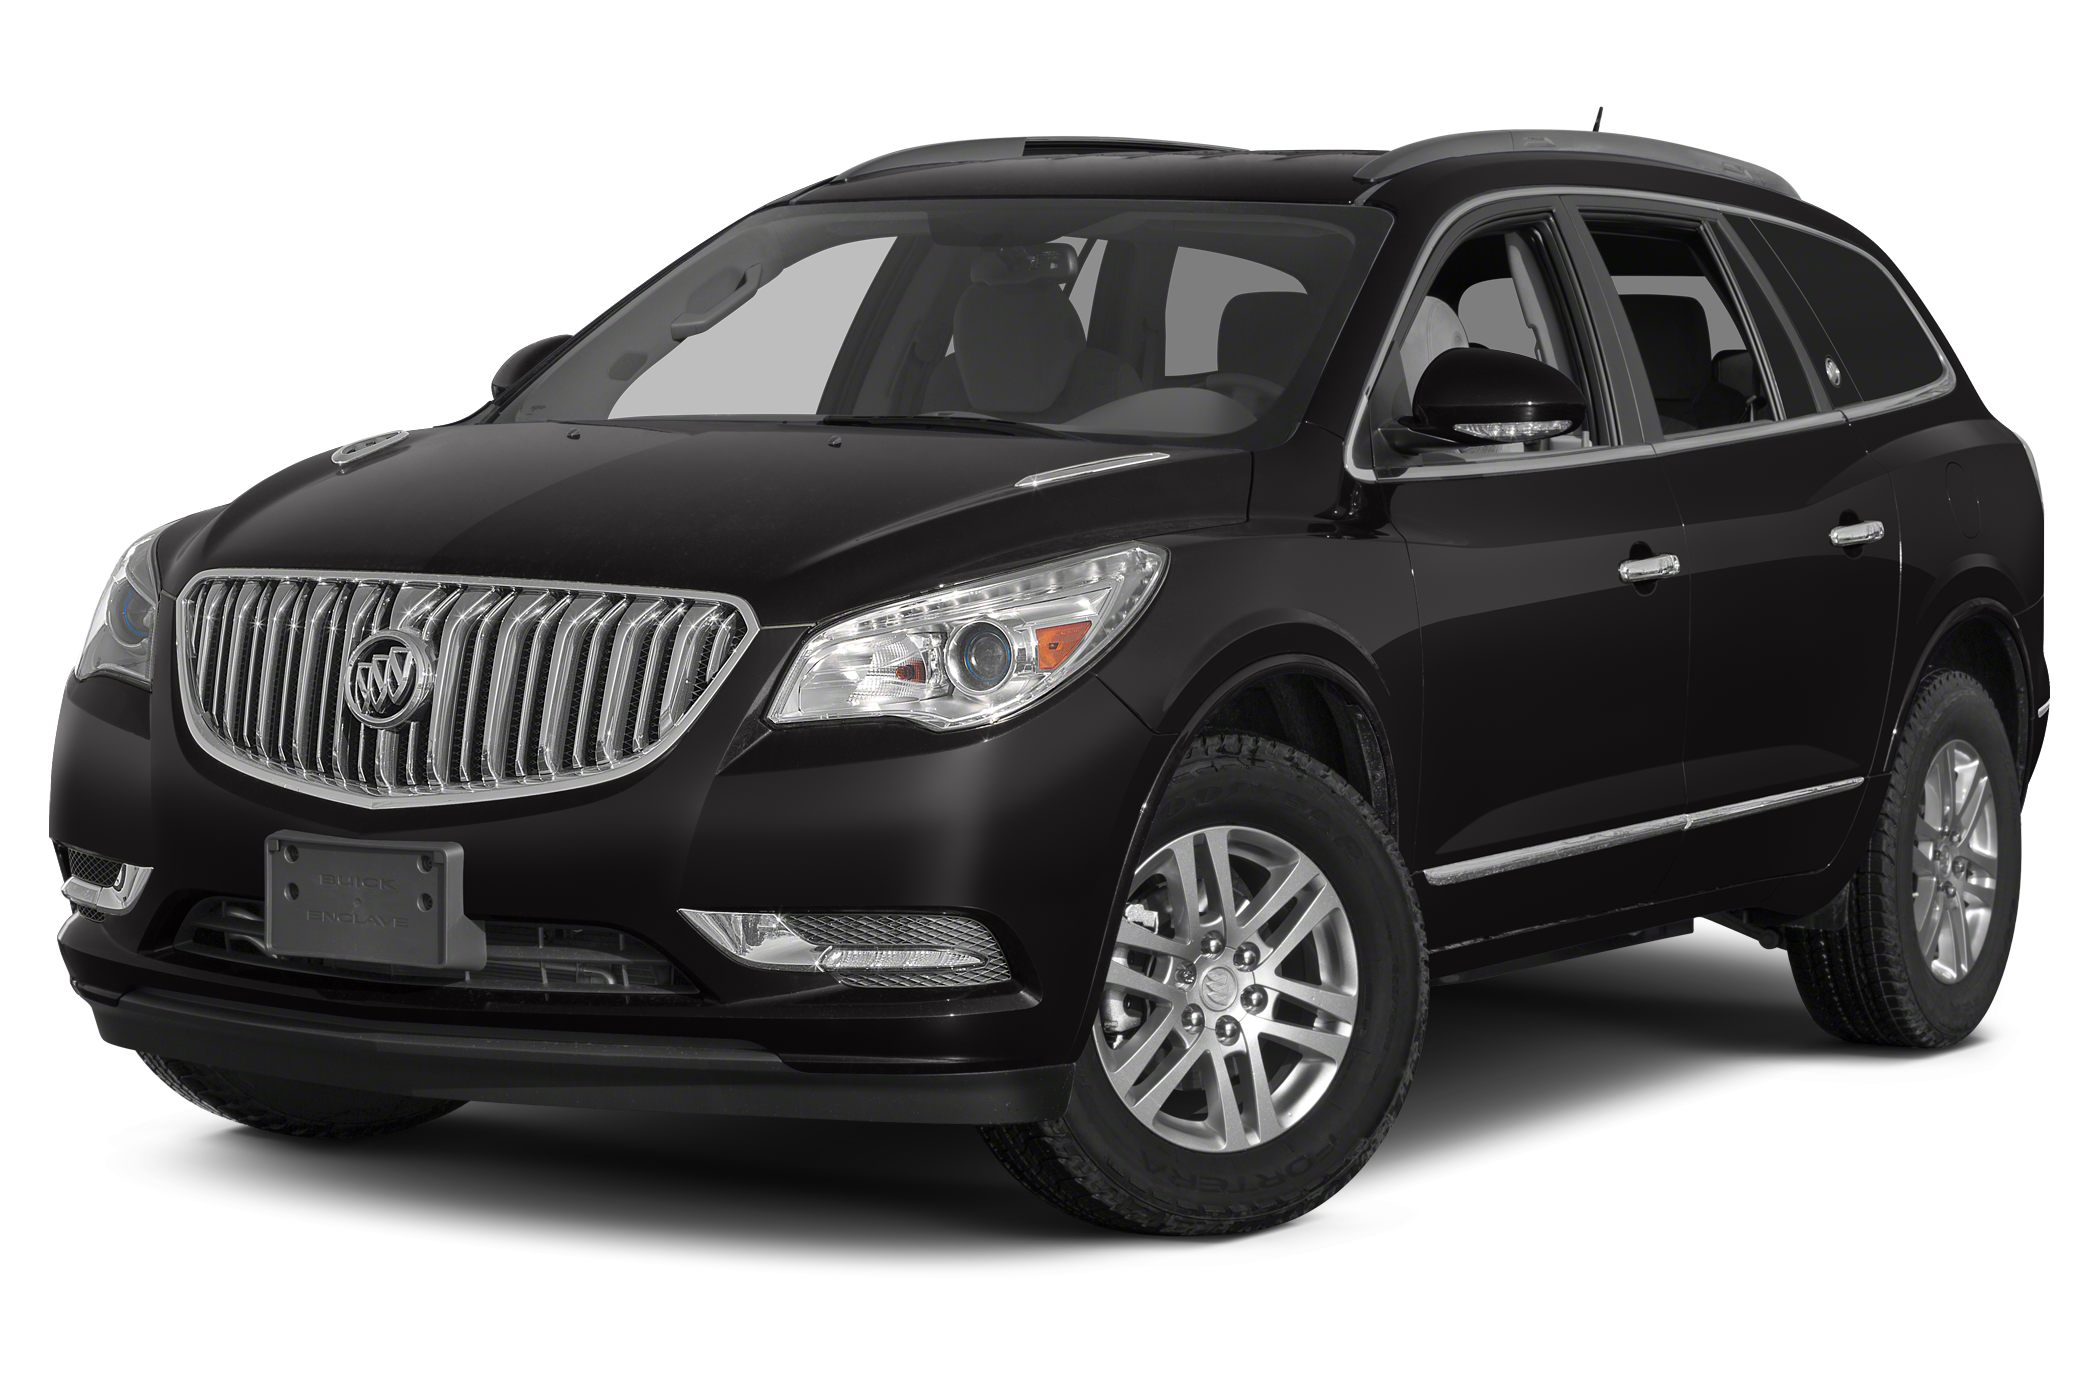 2014 Buick Enclave Premium SUV for sale in Boerne for $53,540 with 0 miles.